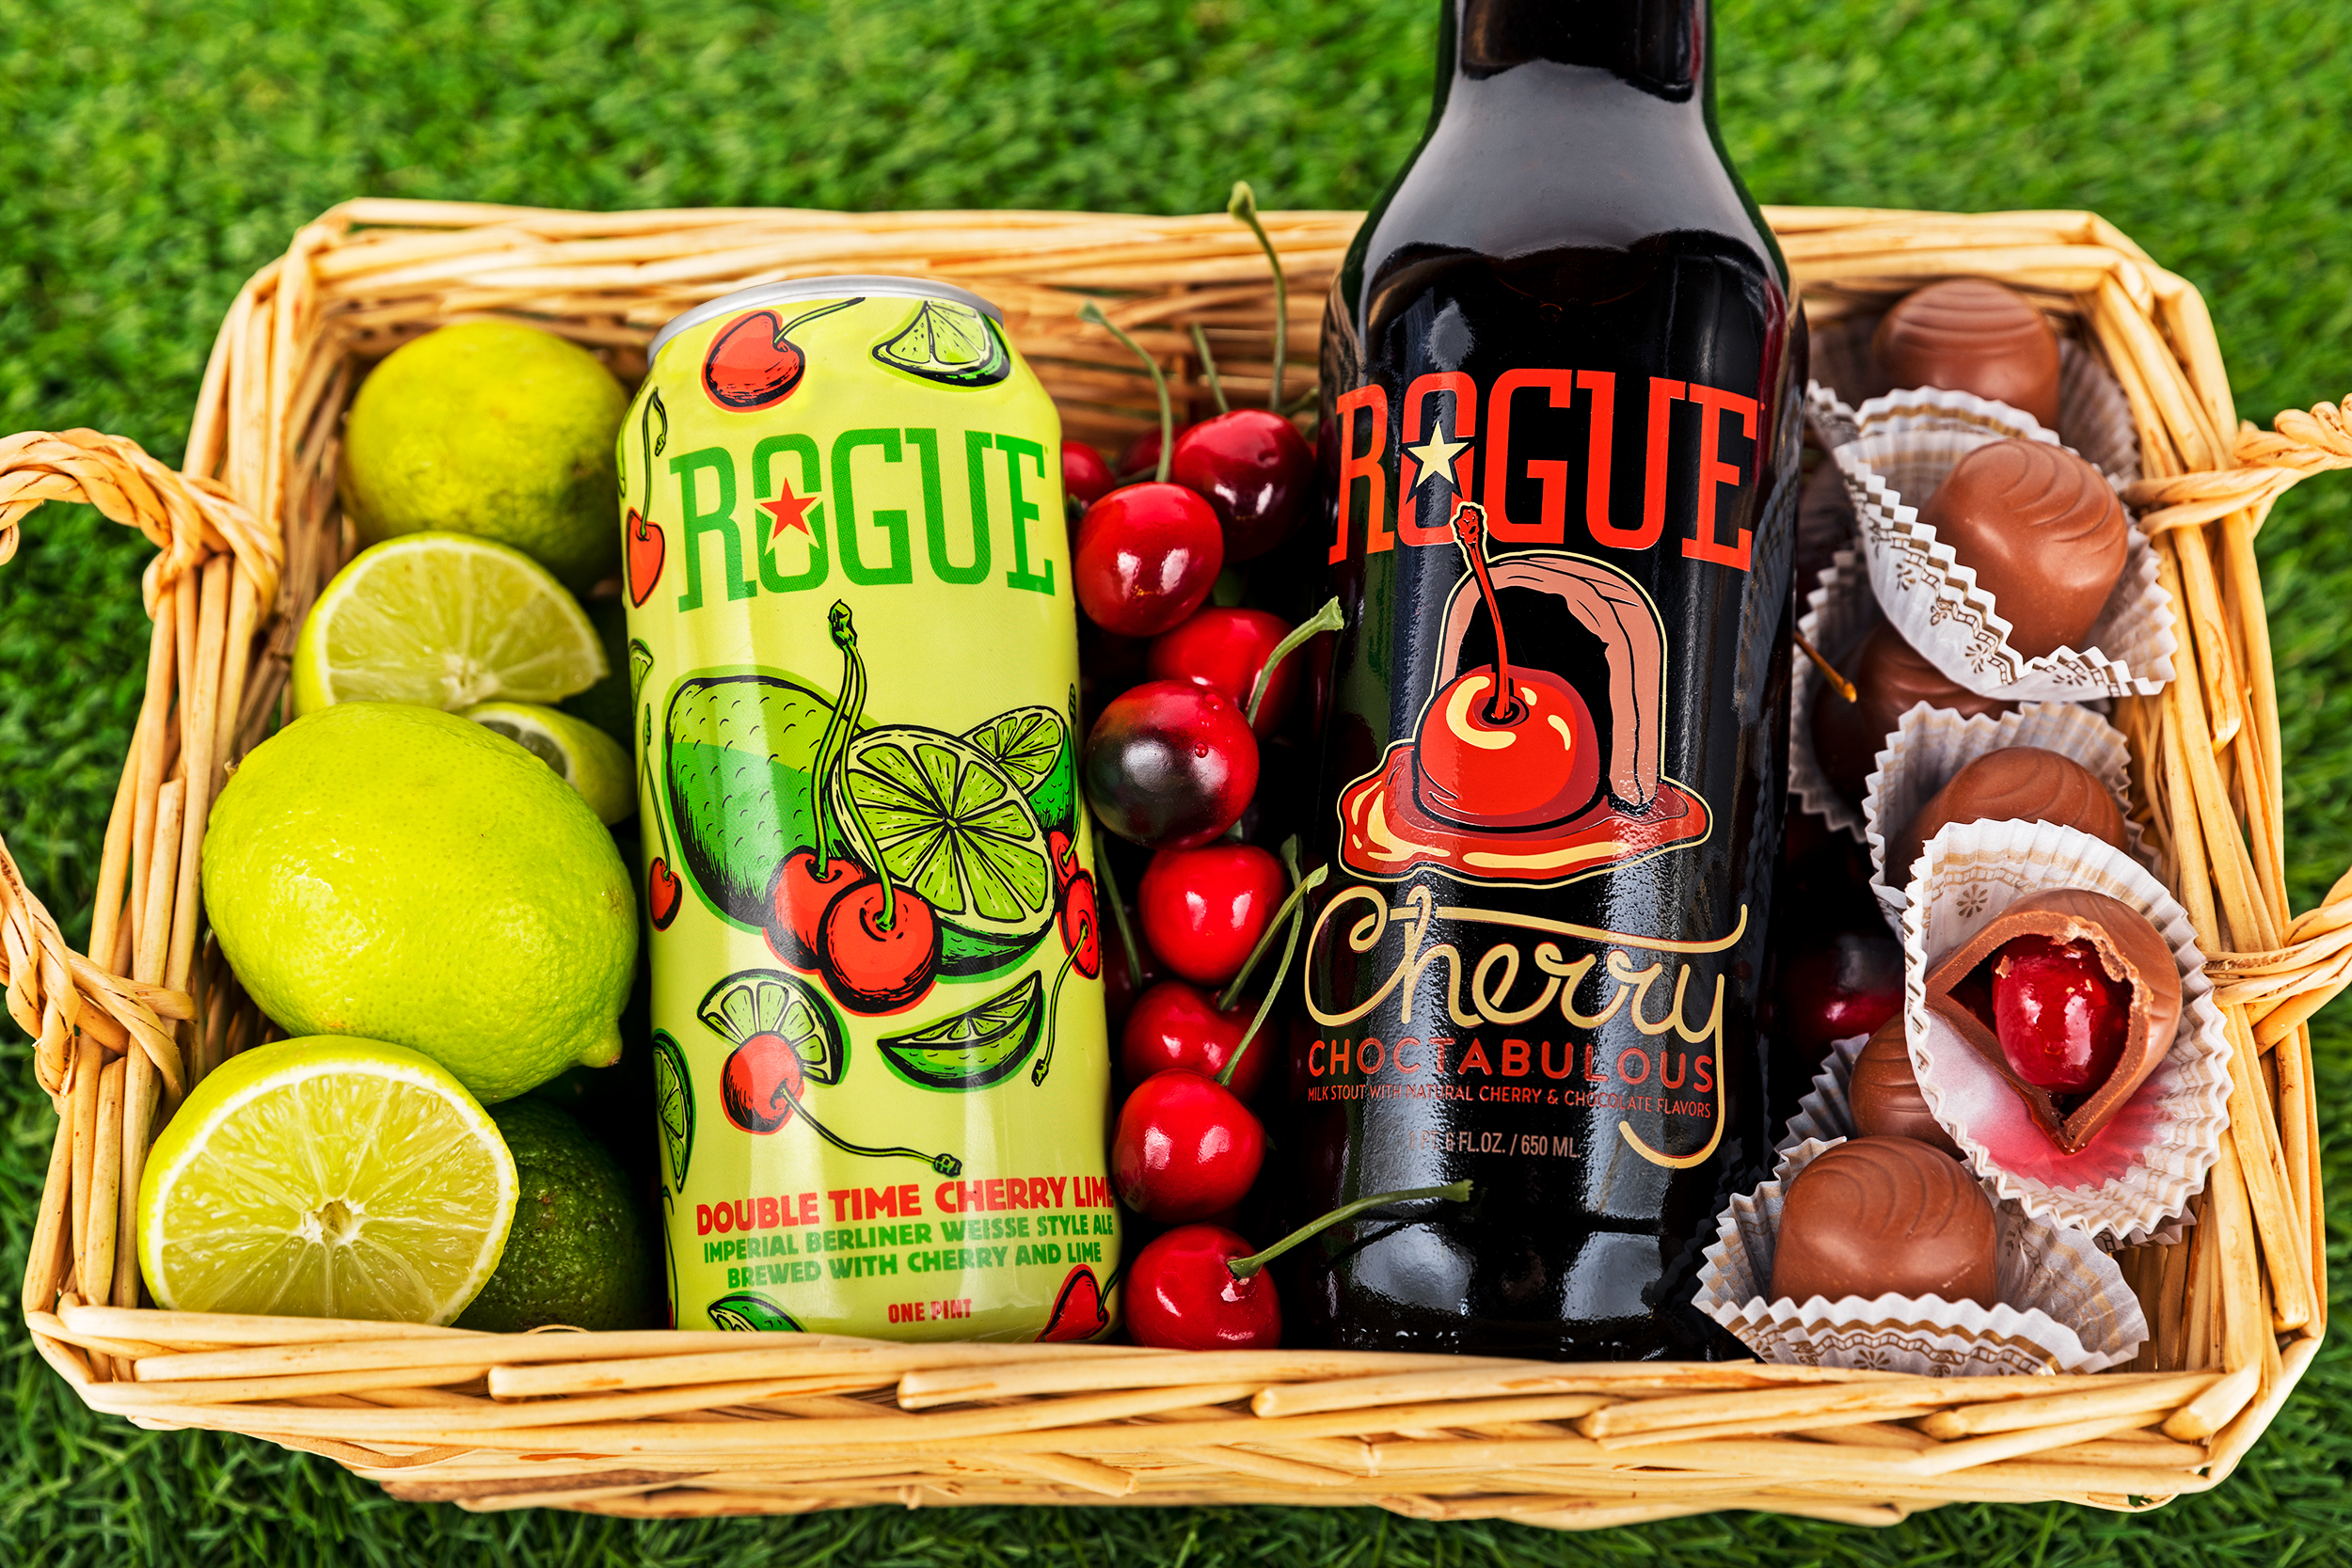 image of Rogue Cherry Lime and Cherry Choctabulous courtesy of Rogue Ales